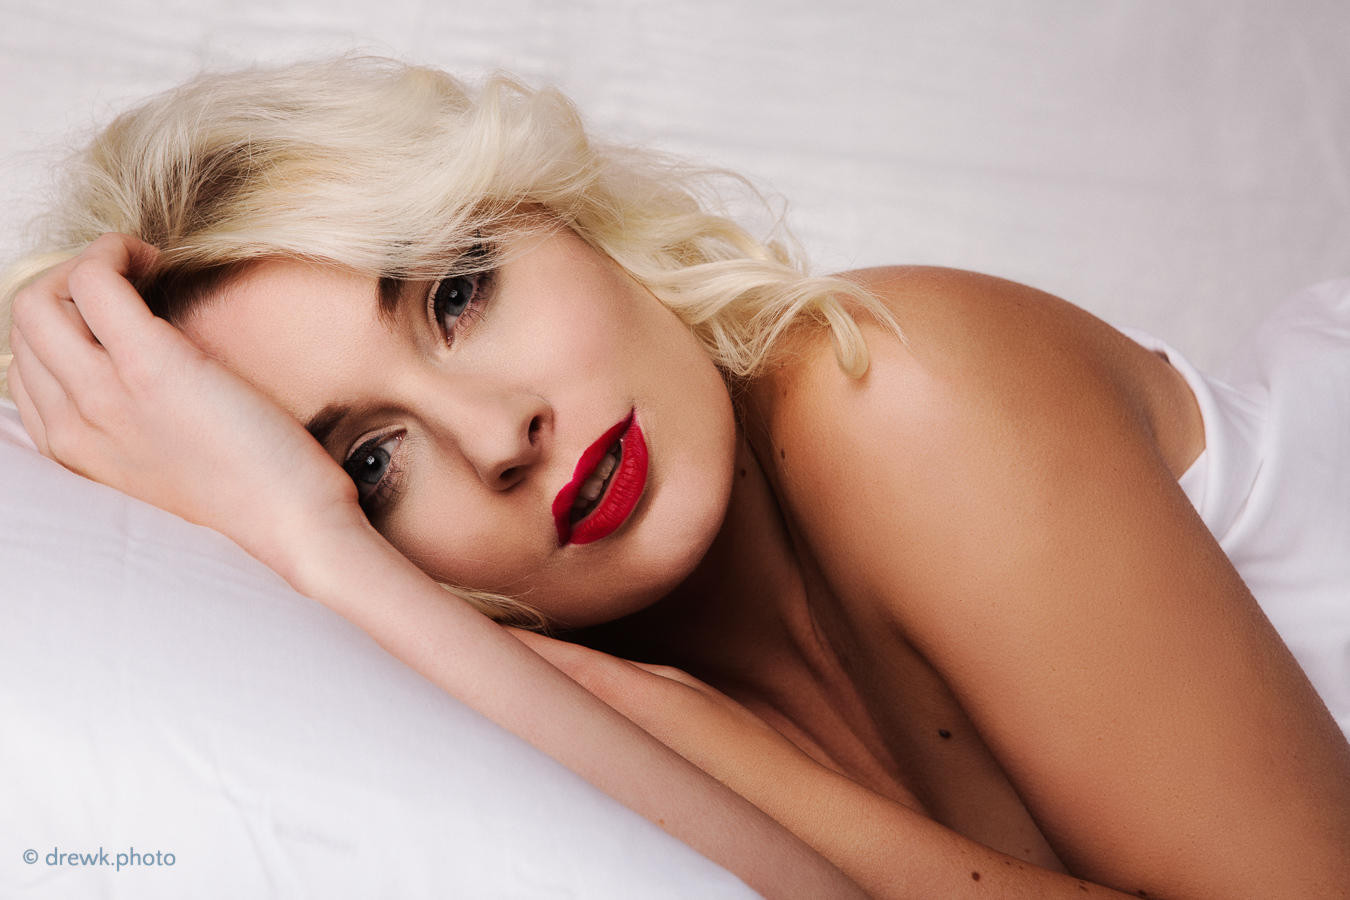 Blonde From a Marilyn Monroe themed shoot